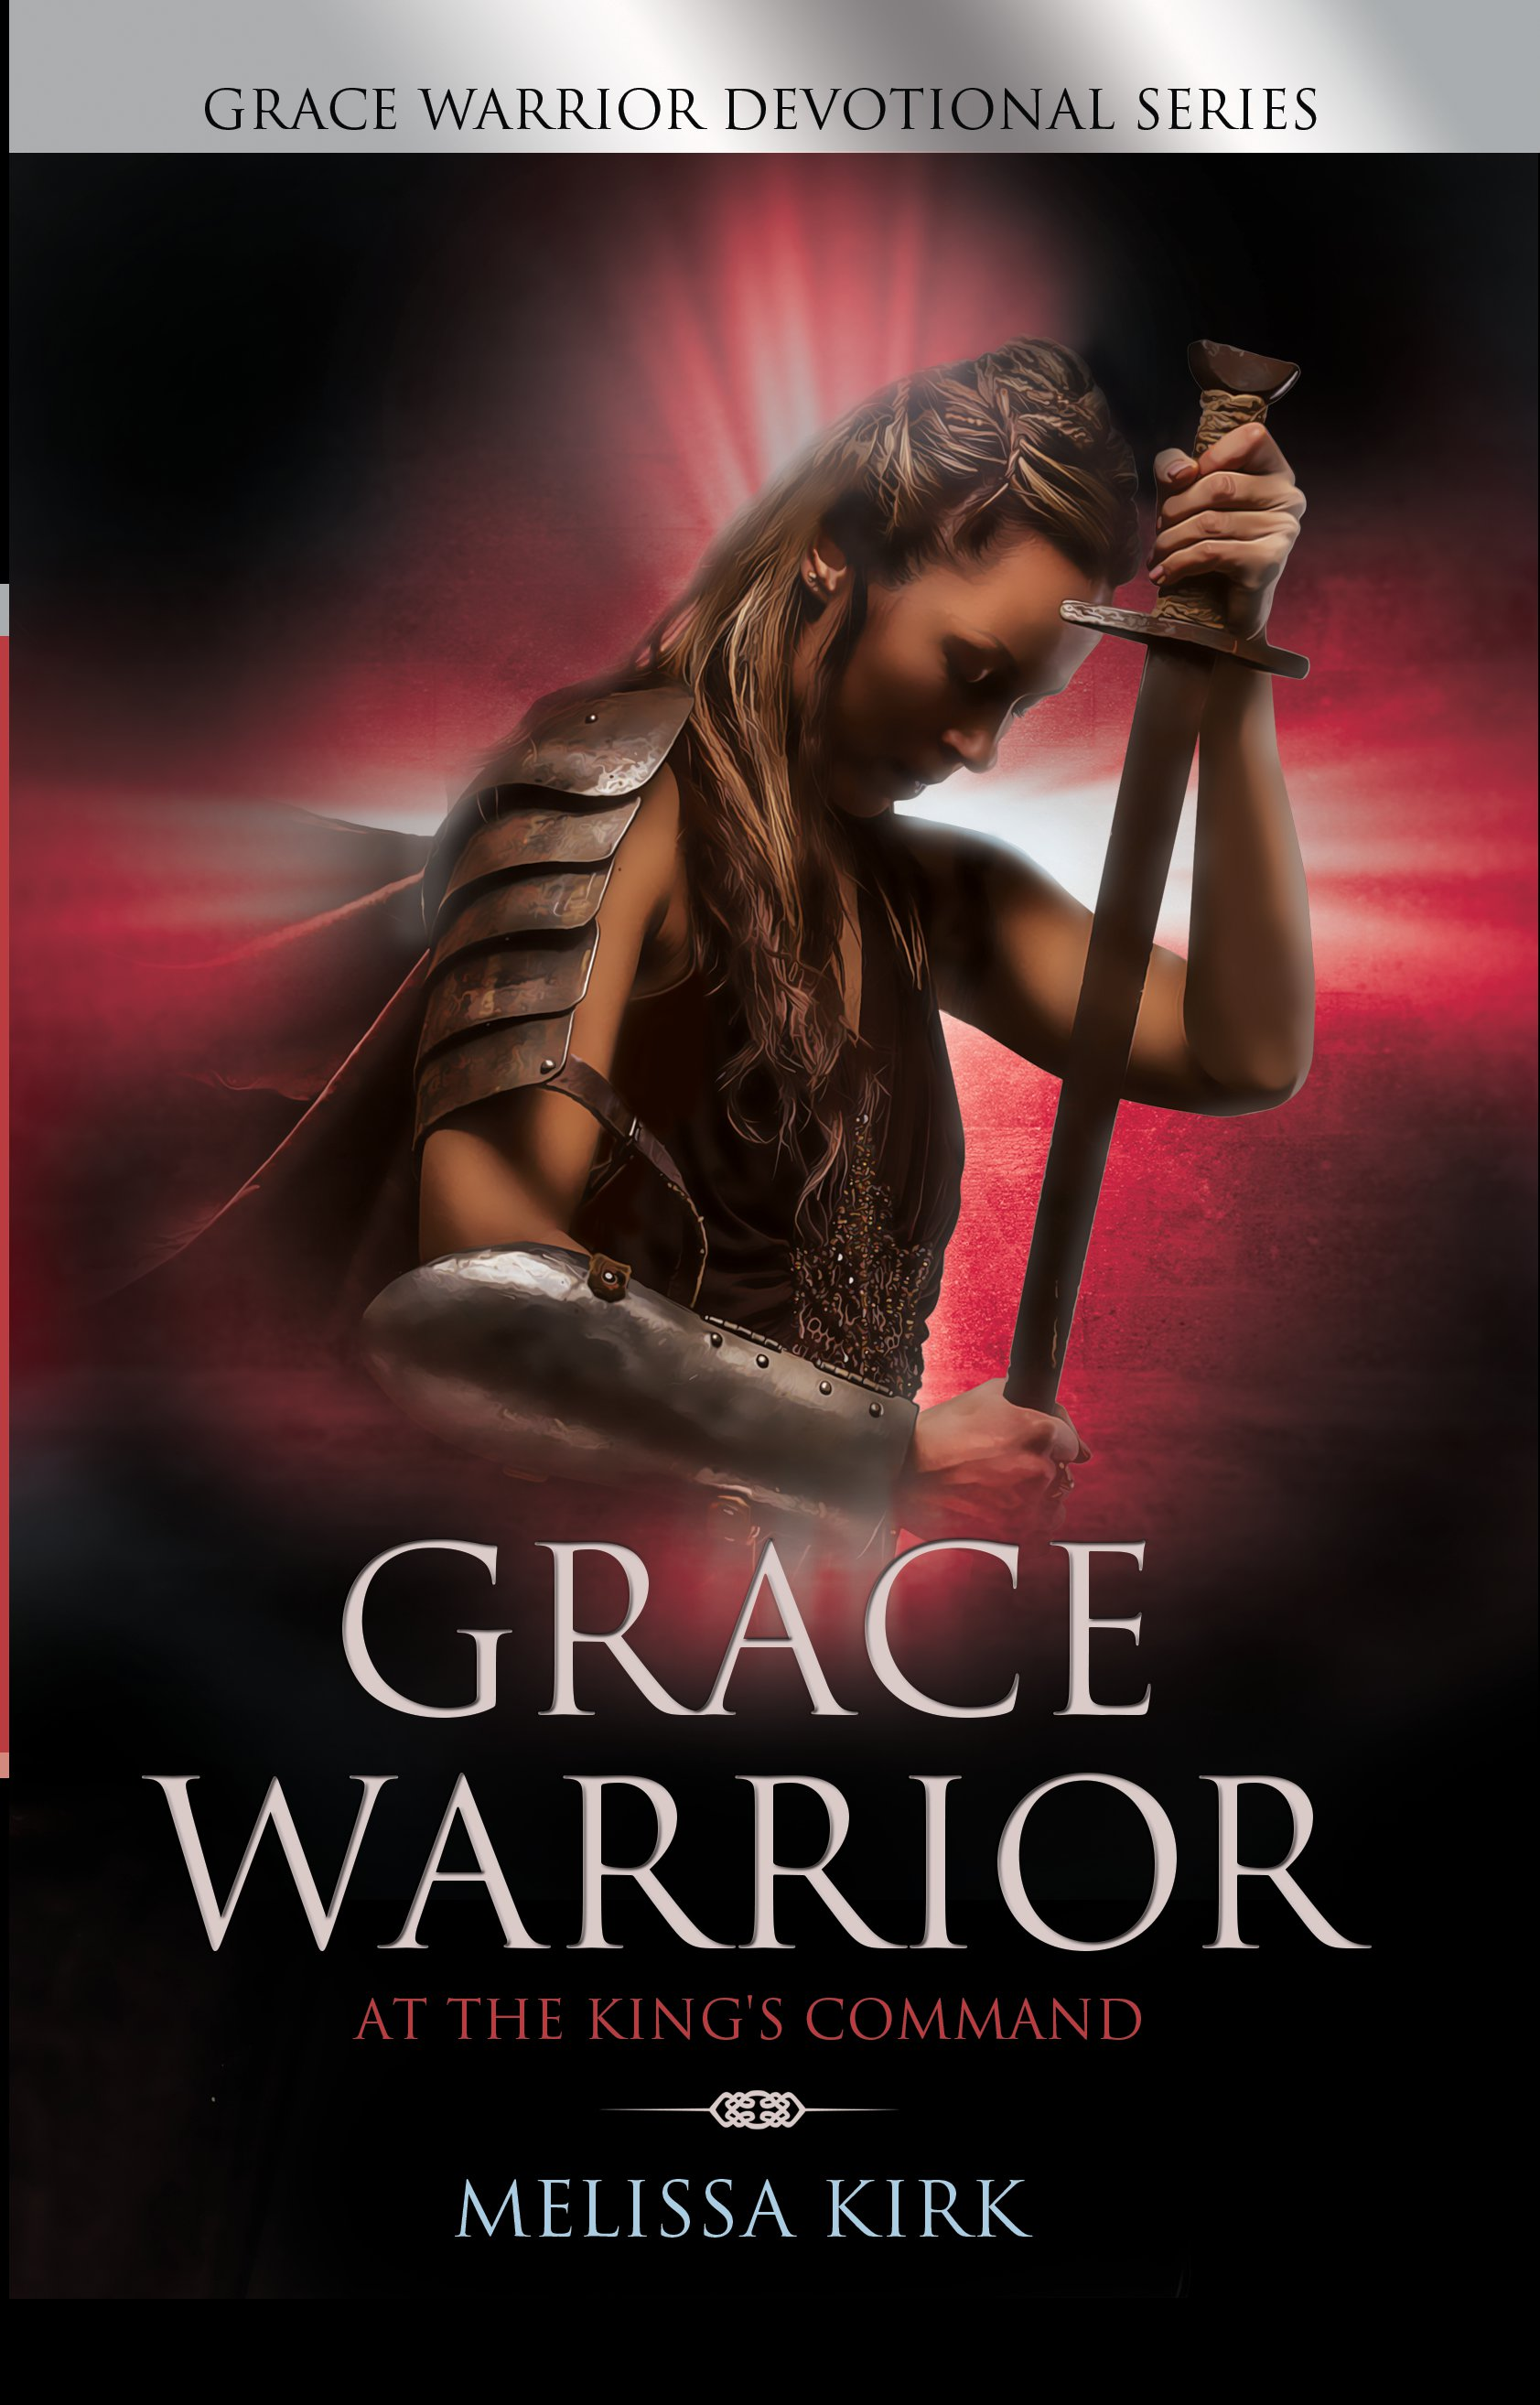 GRACE WARRIOR - At The King's Command